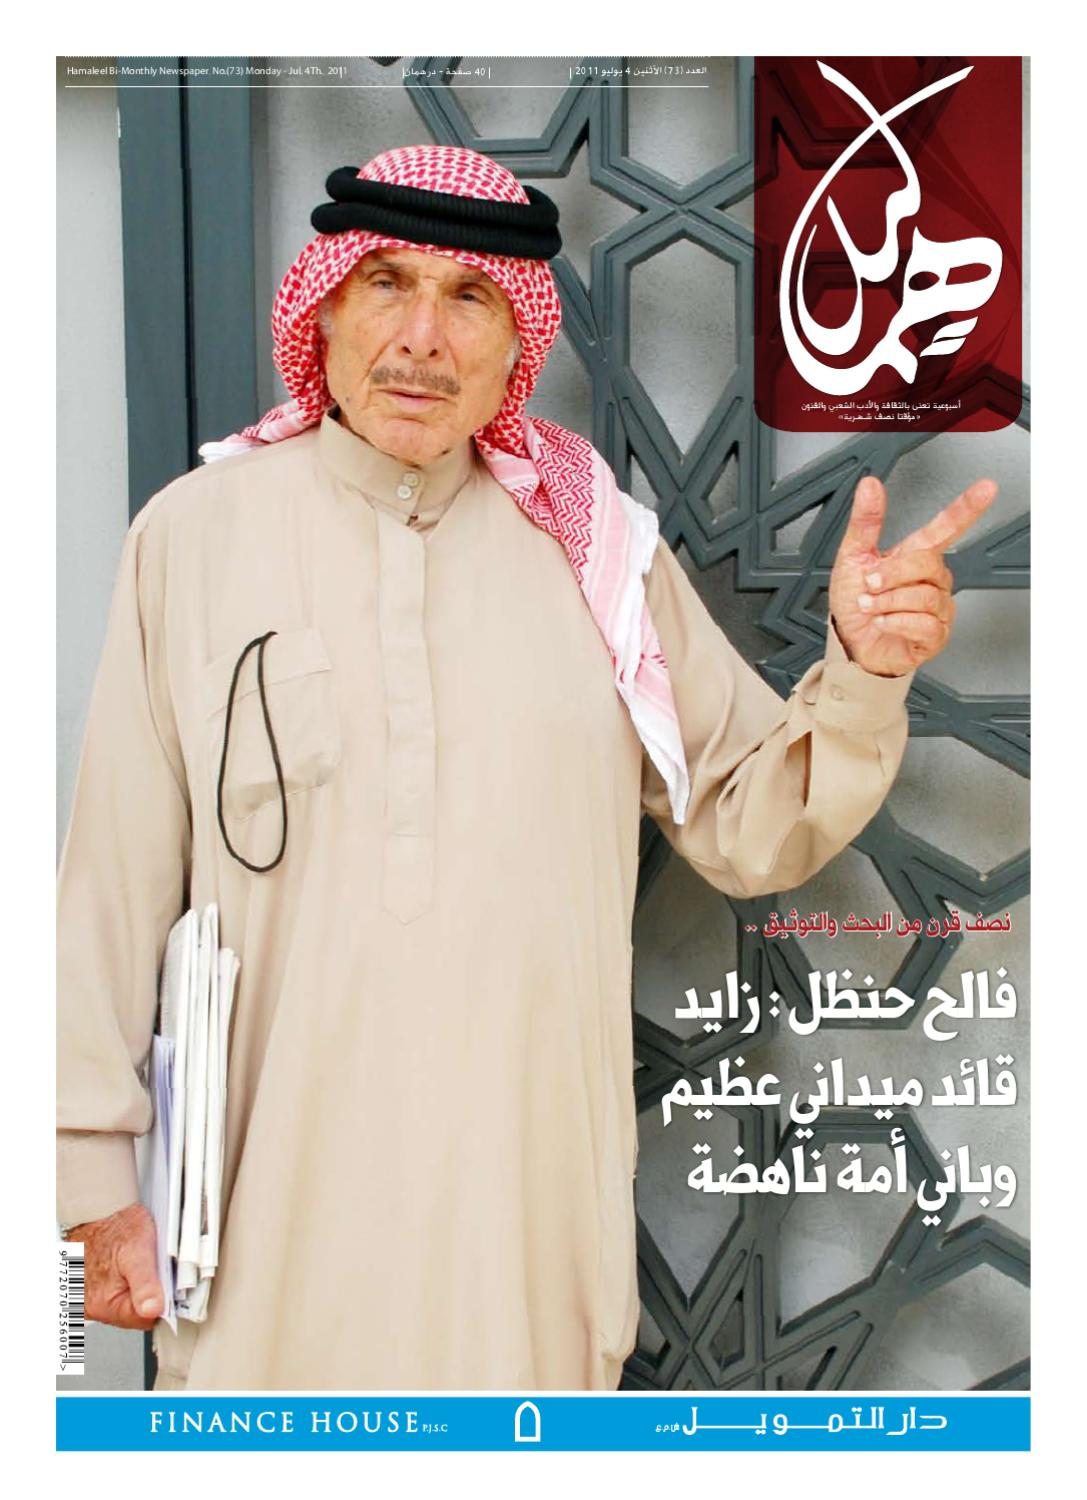 3586c652c Issue No. 73 by Hamaleel newspaper - issuu